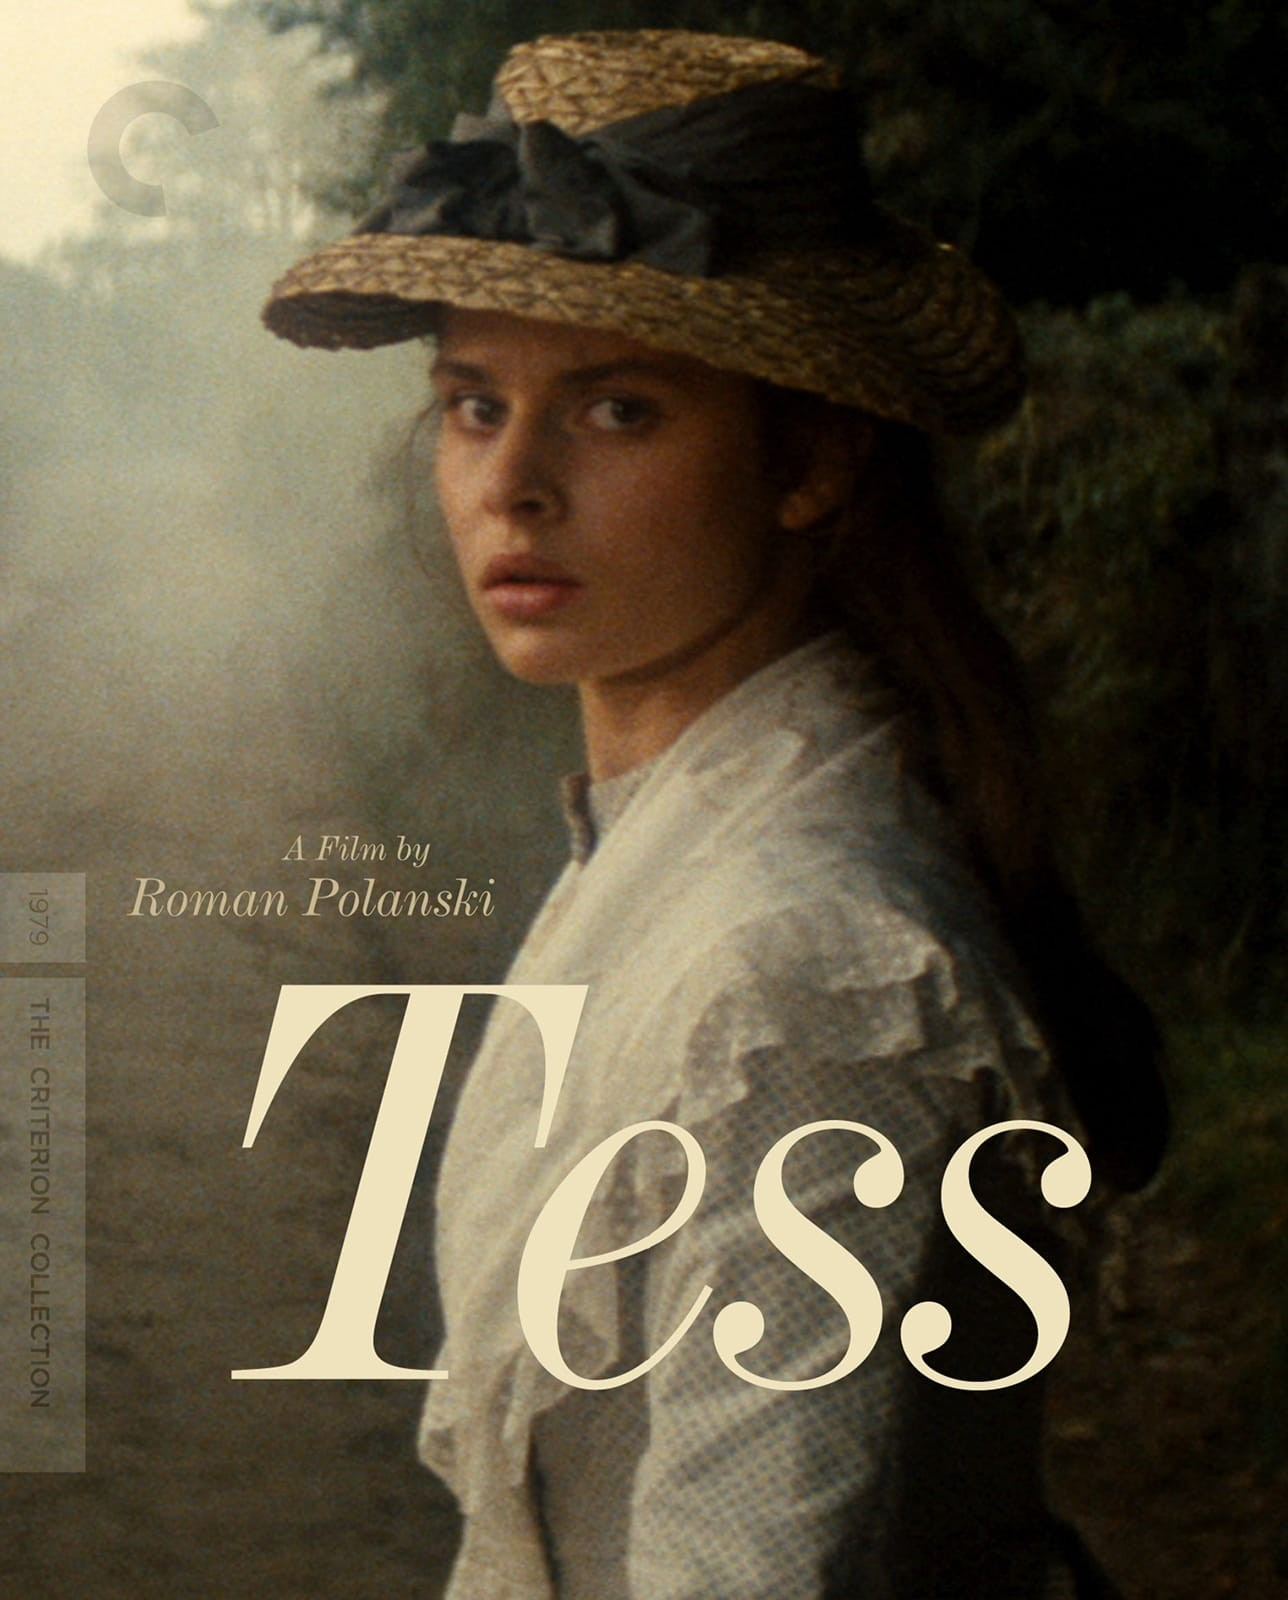 Tess (1979) - Directed by: Roman PolanskiStarring: Nastassja Kinski, Peter Firth, Leigh LawsonRated: PGRunning Time: 3 h 6 mTMM Score: 5 stars out of 5STRENGTHS: Story, Writing, Cinematography, Directing, Attention to DetailWEAKNESSES: -